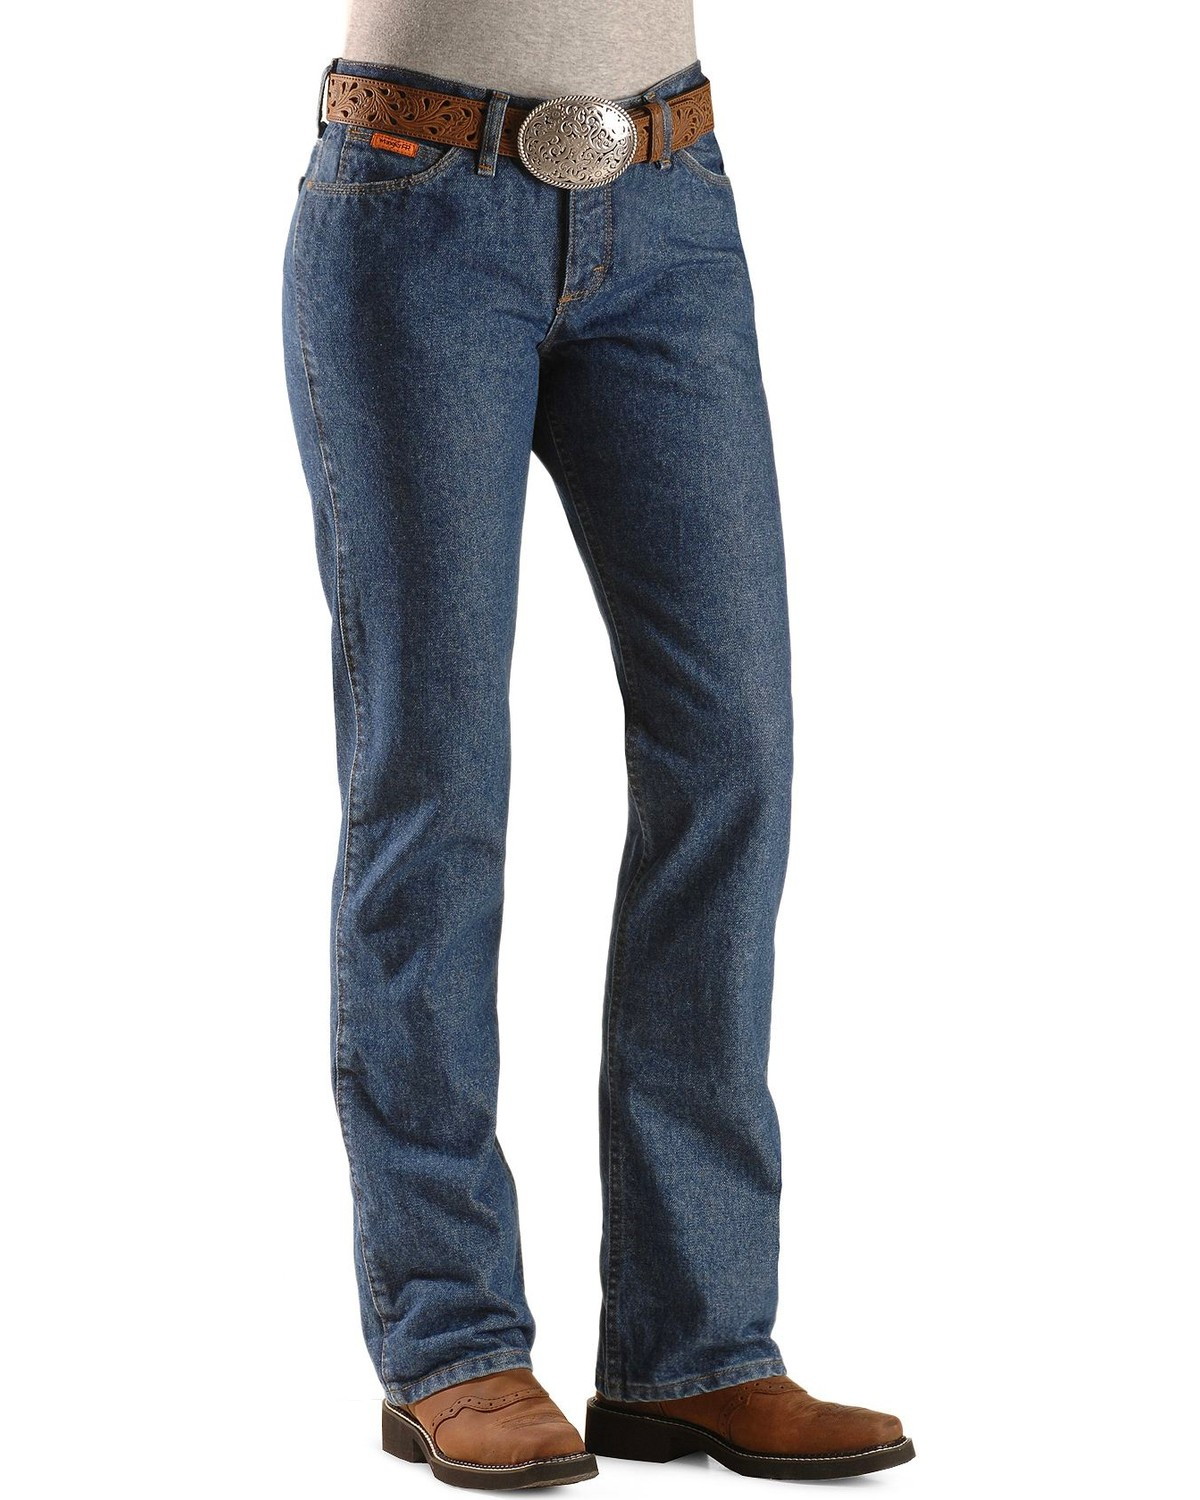 fe35ed04ad52 Wrangler Women s Flame Resistant Boot Cut Western Jeans